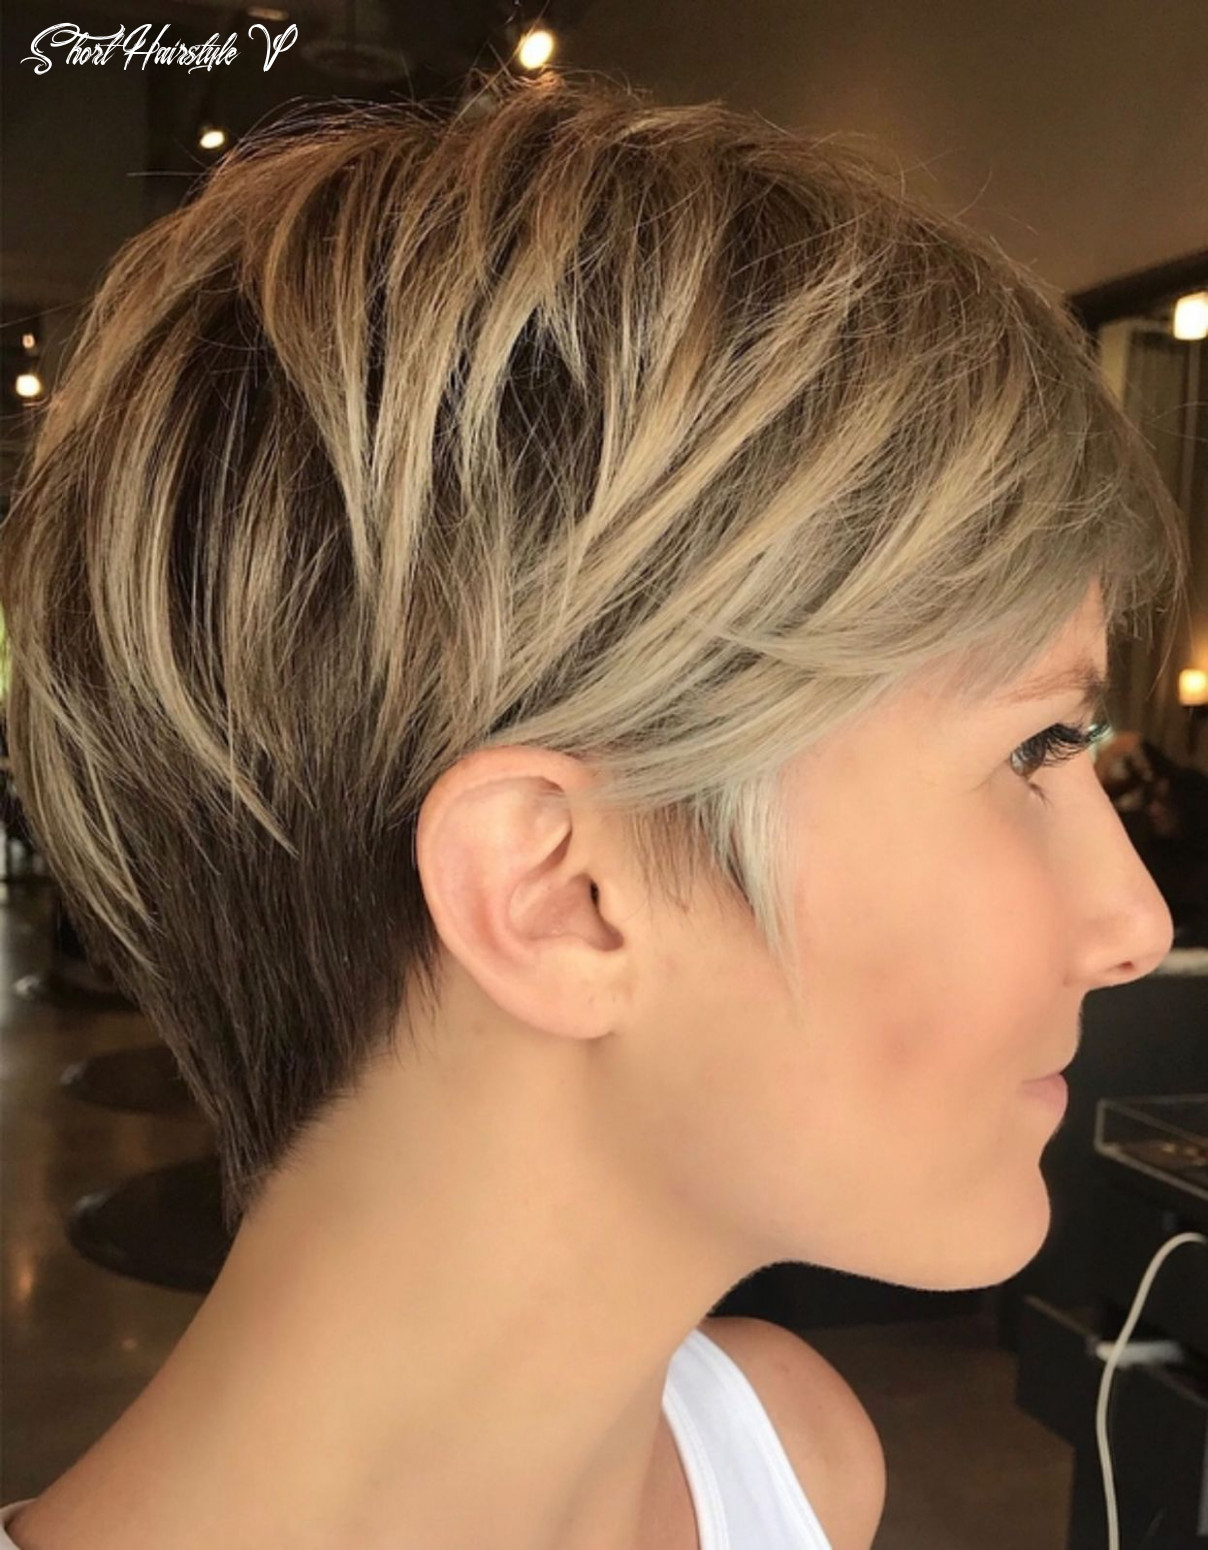 12 mind blowing short hairstyles for fine hair | short thin hair